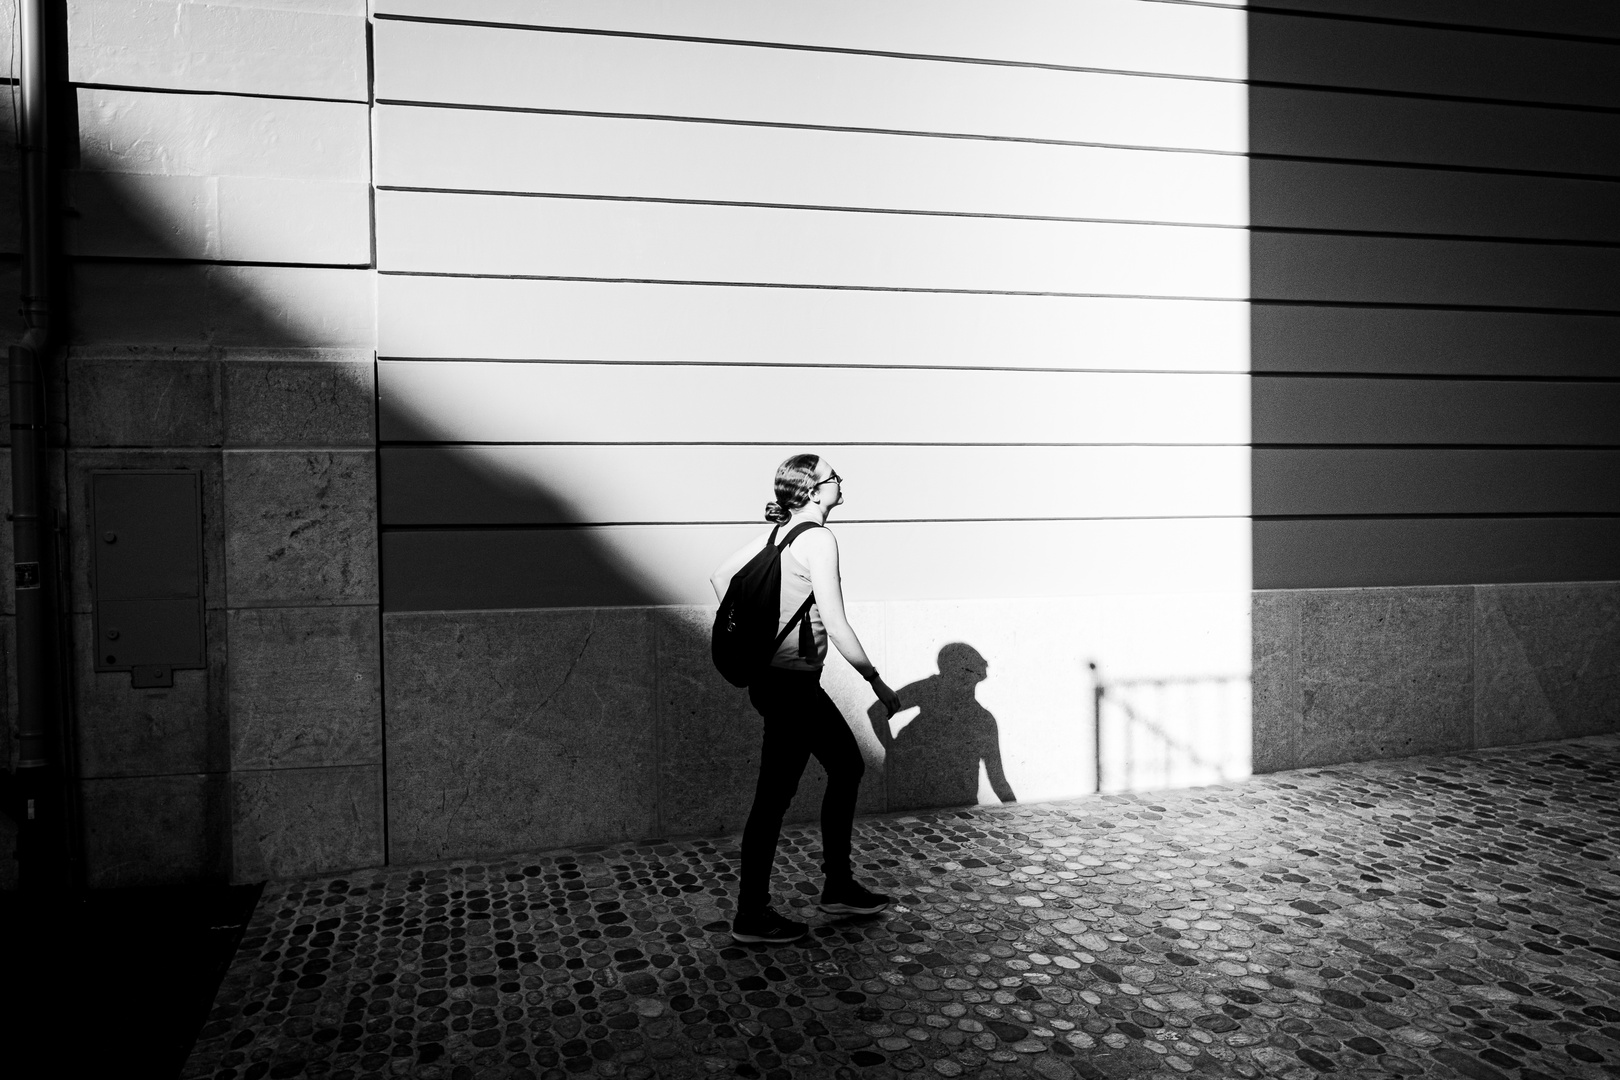 Holding back the shadow